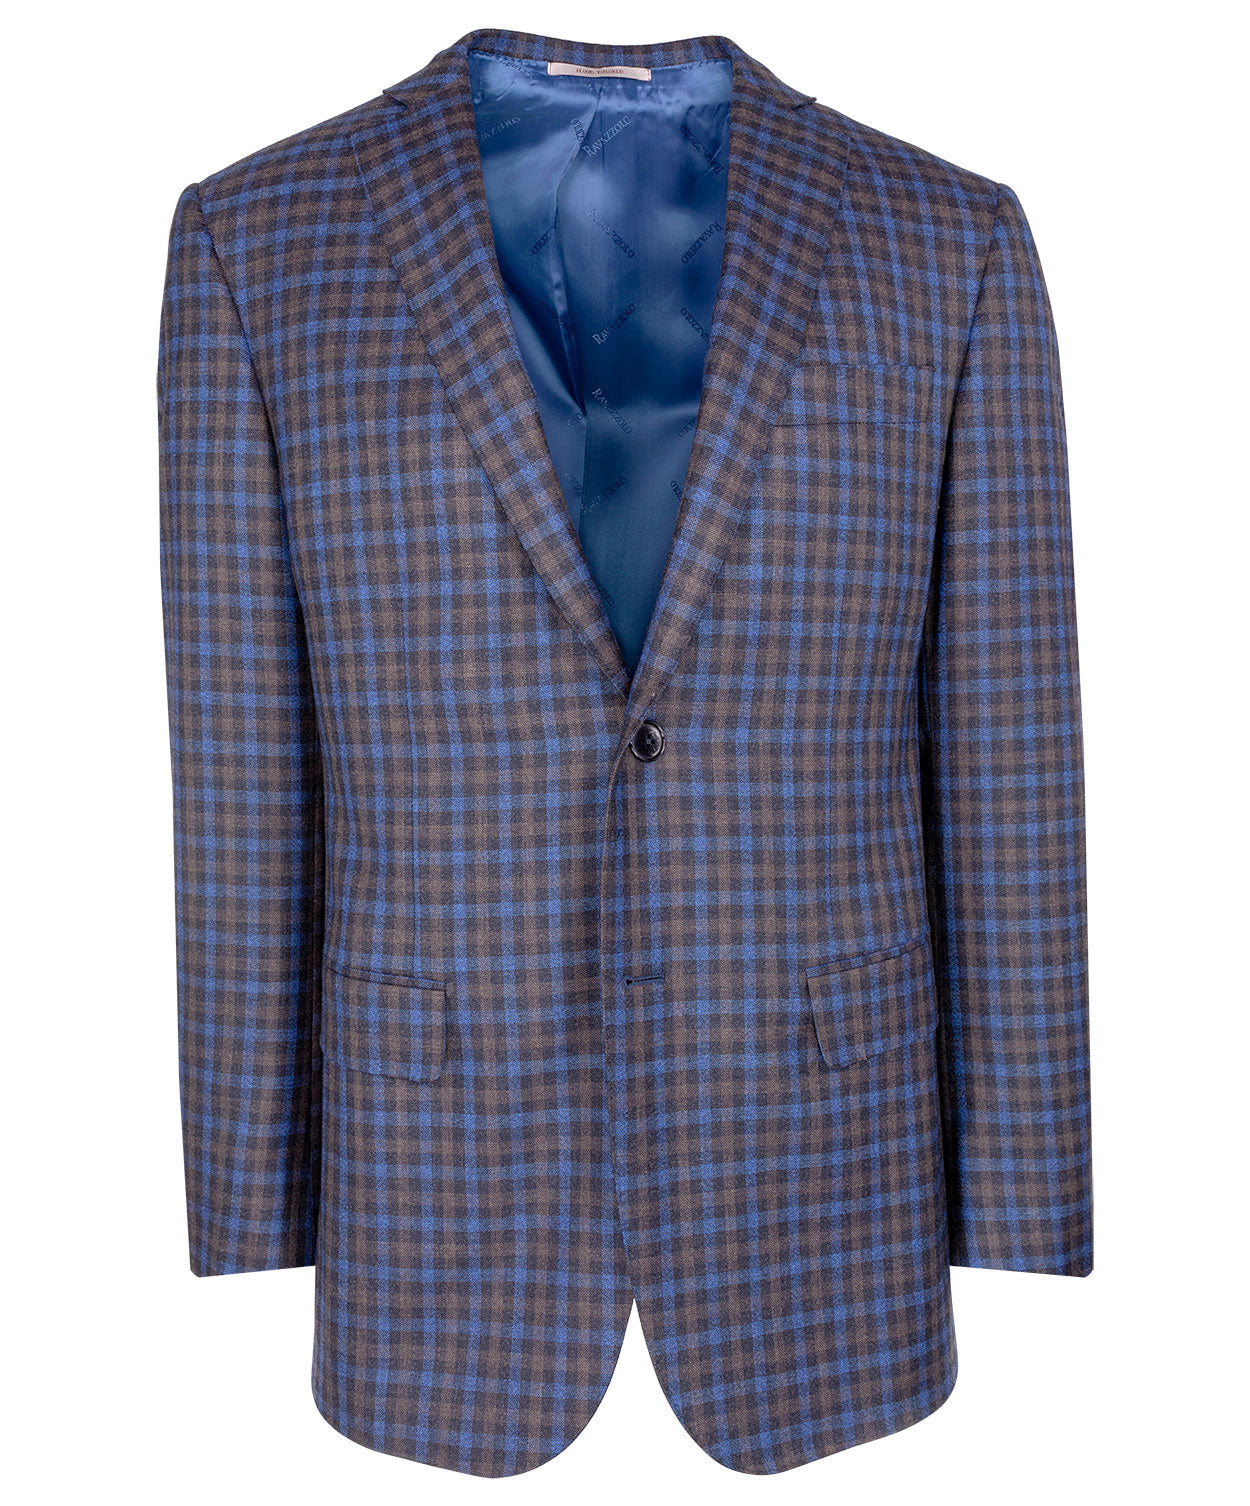 Navy/Earthy Grey Blended Tonal Gingham Sport Jacket